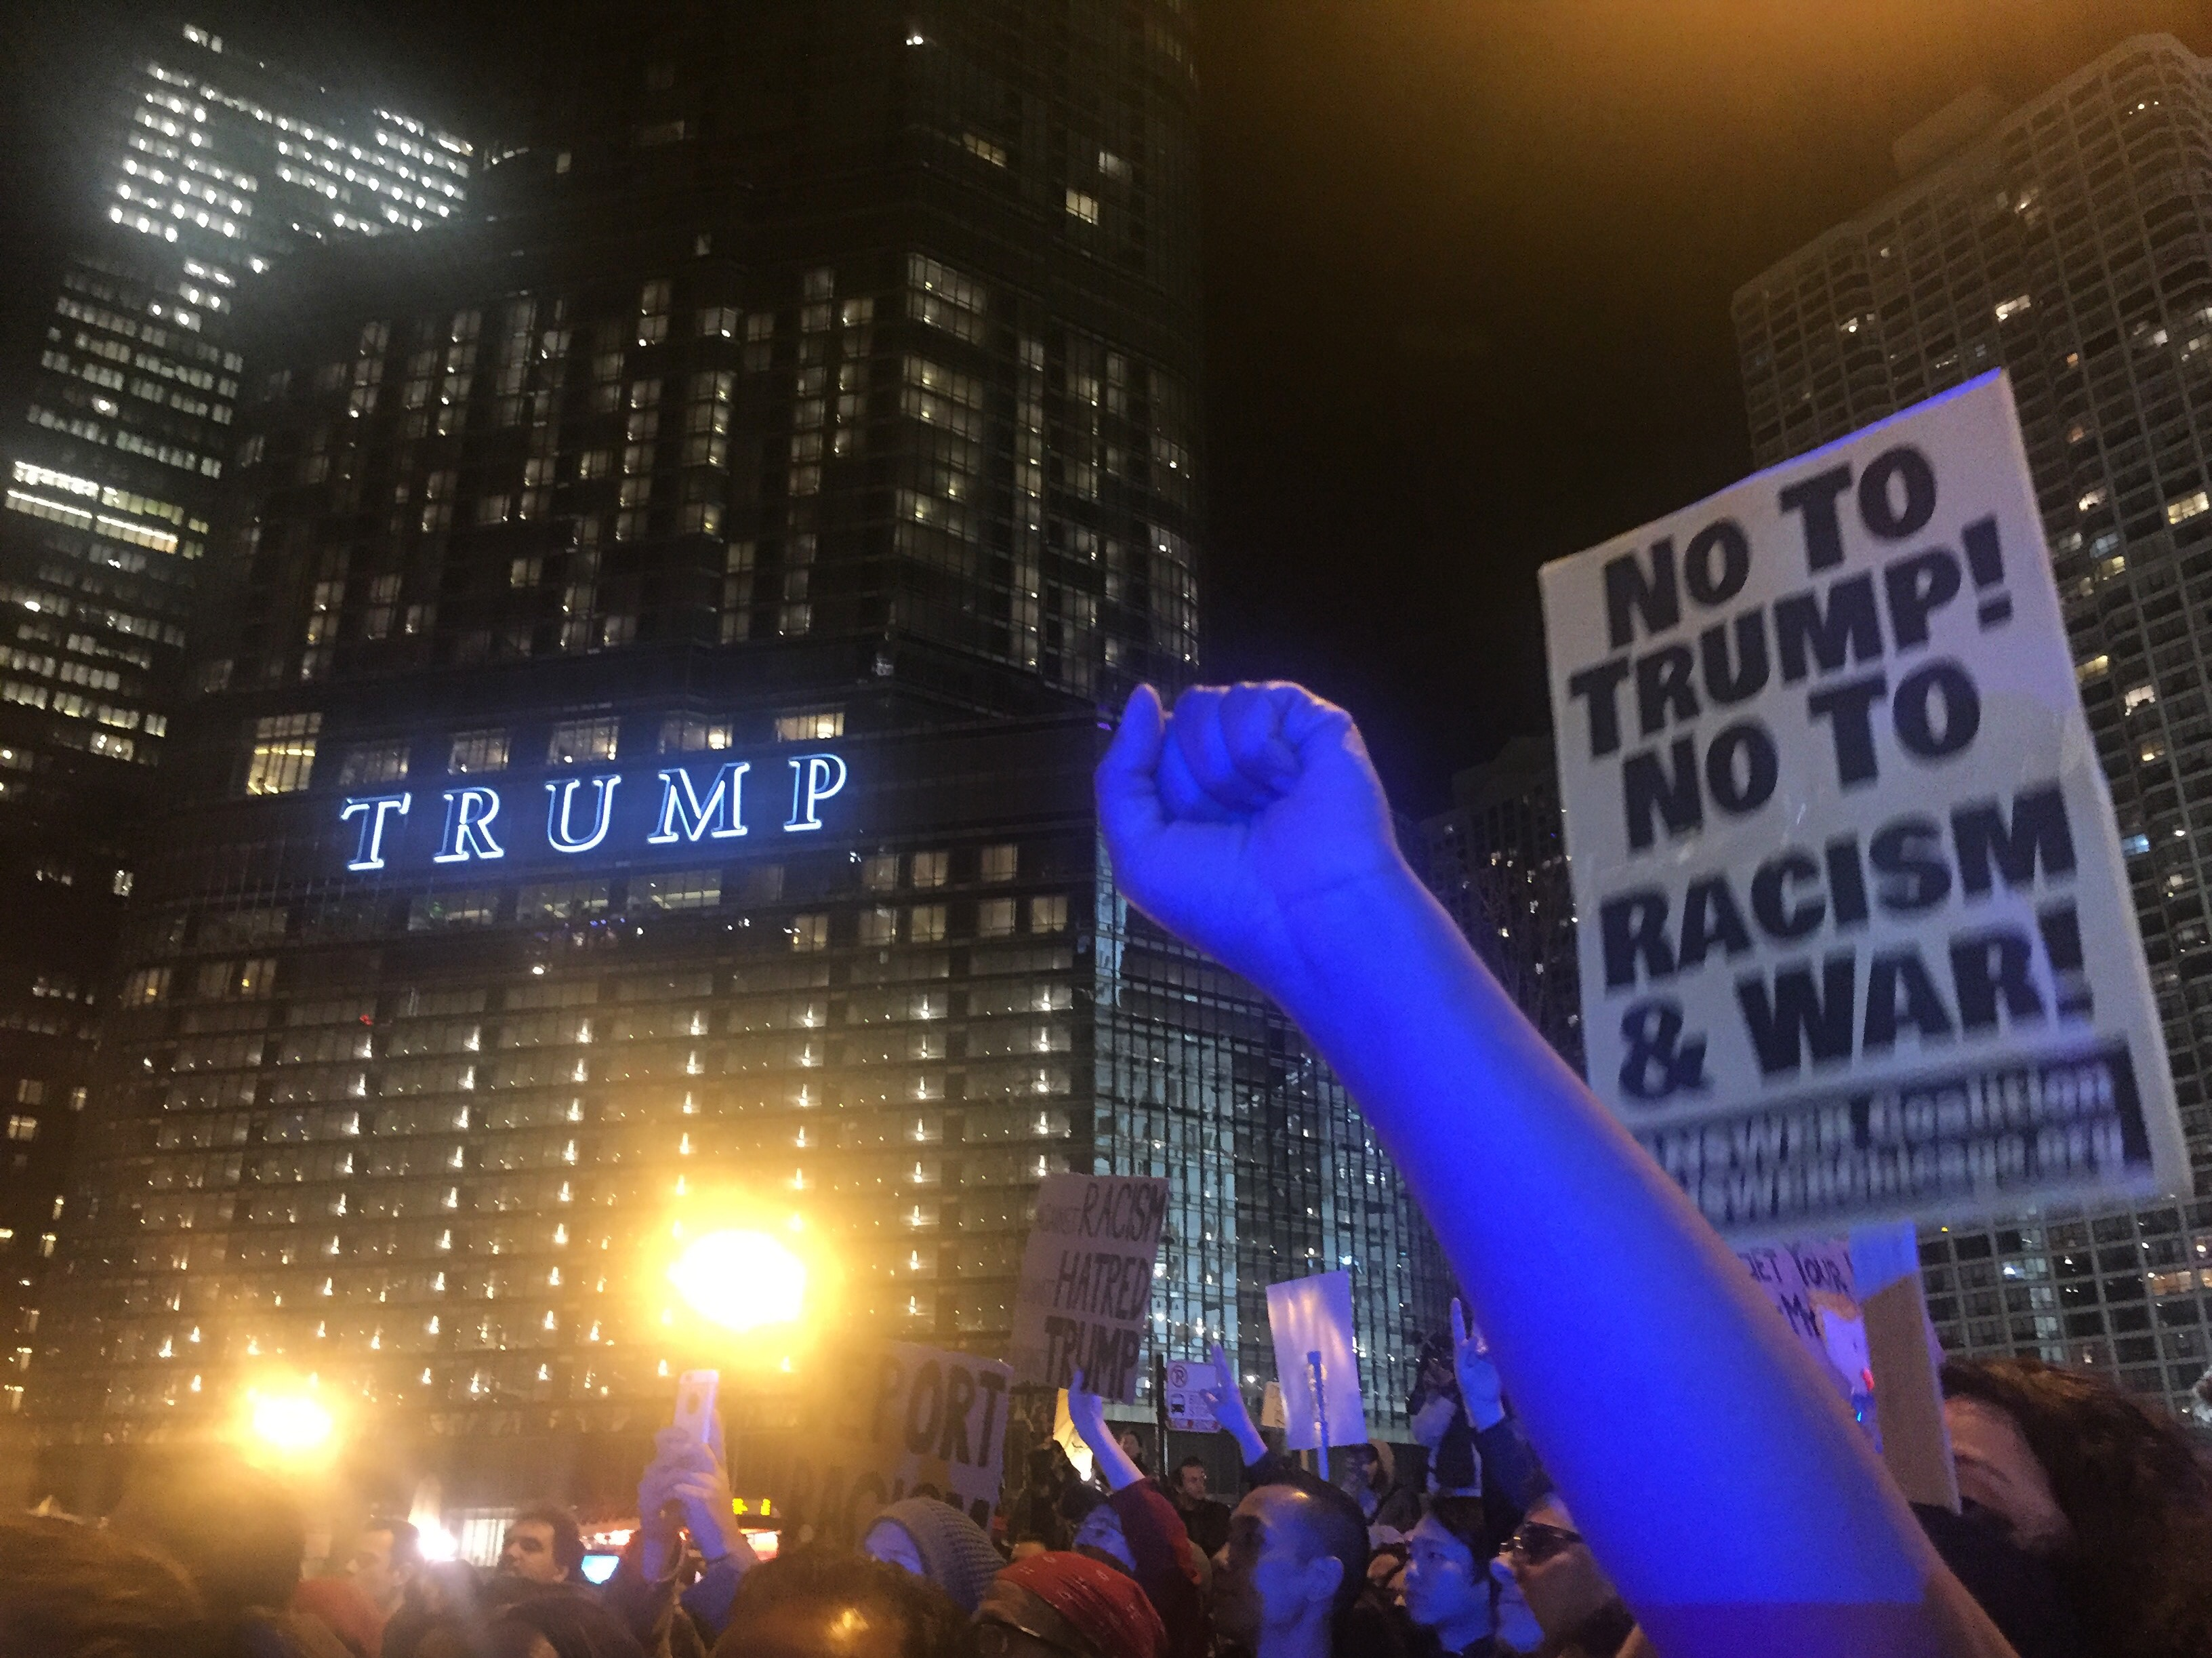 Protesters in front of Trump Tower in downtown Chicago Nov 9.2016. (Fariba Pajooh/MEDILL)